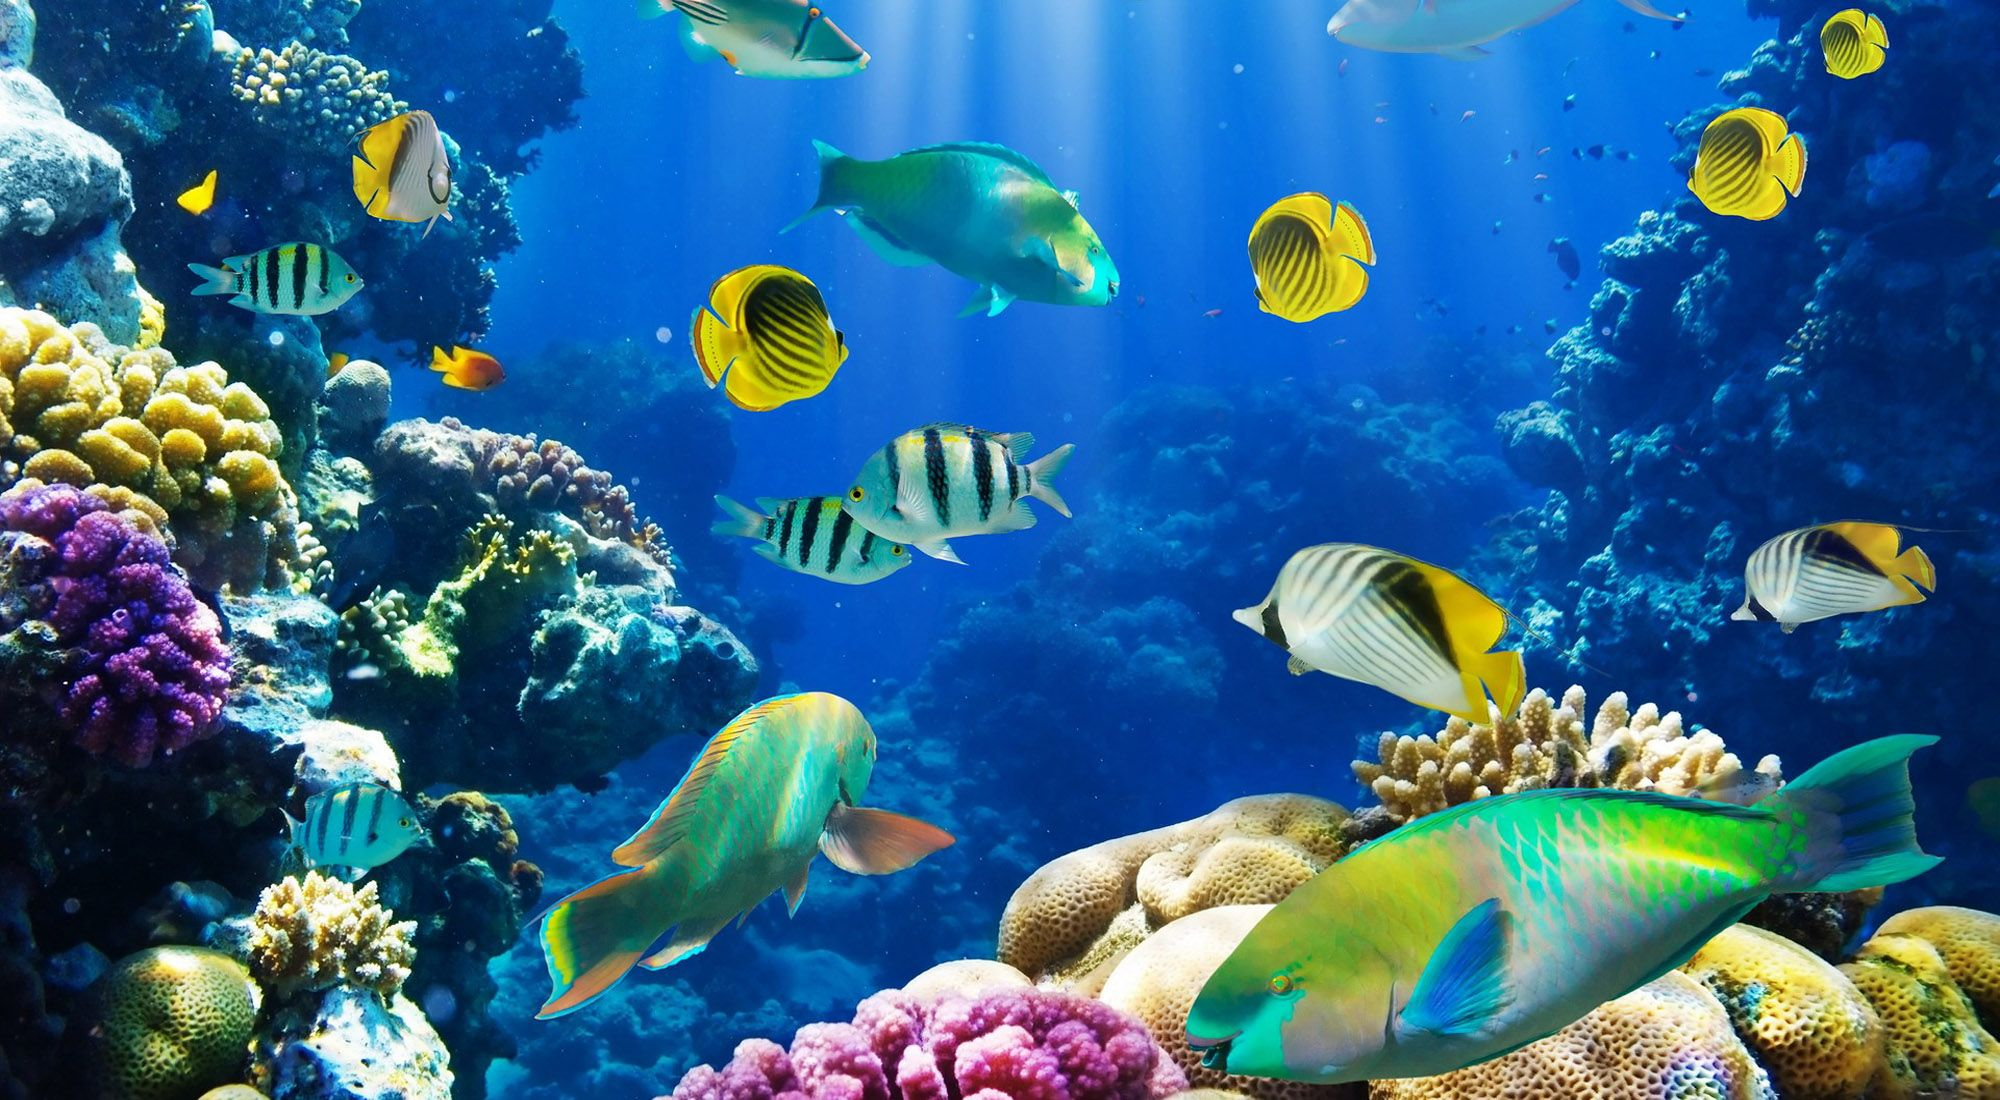 HD Fish Wallpapers Underwater wallpaper, Fish wallpaper